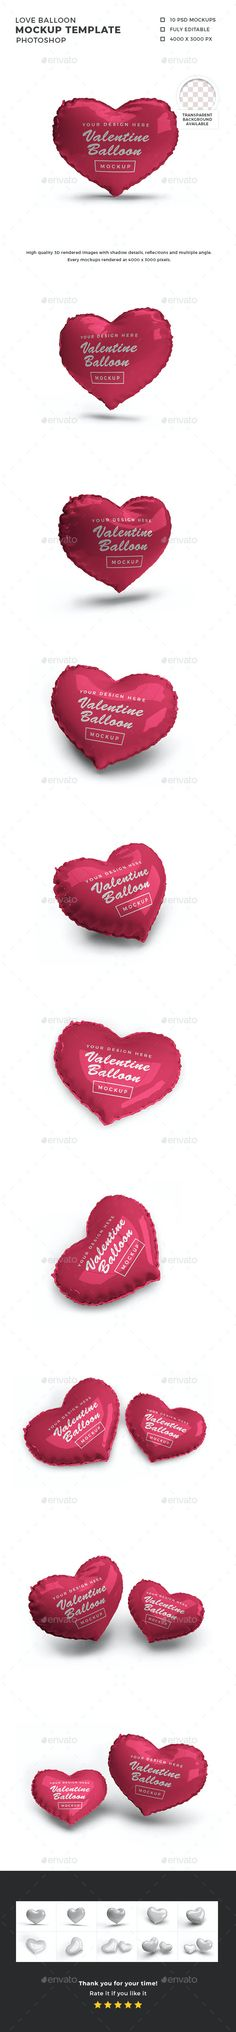 Valentine Love Balloon Mockup Template by DendySign | GraphicRiver